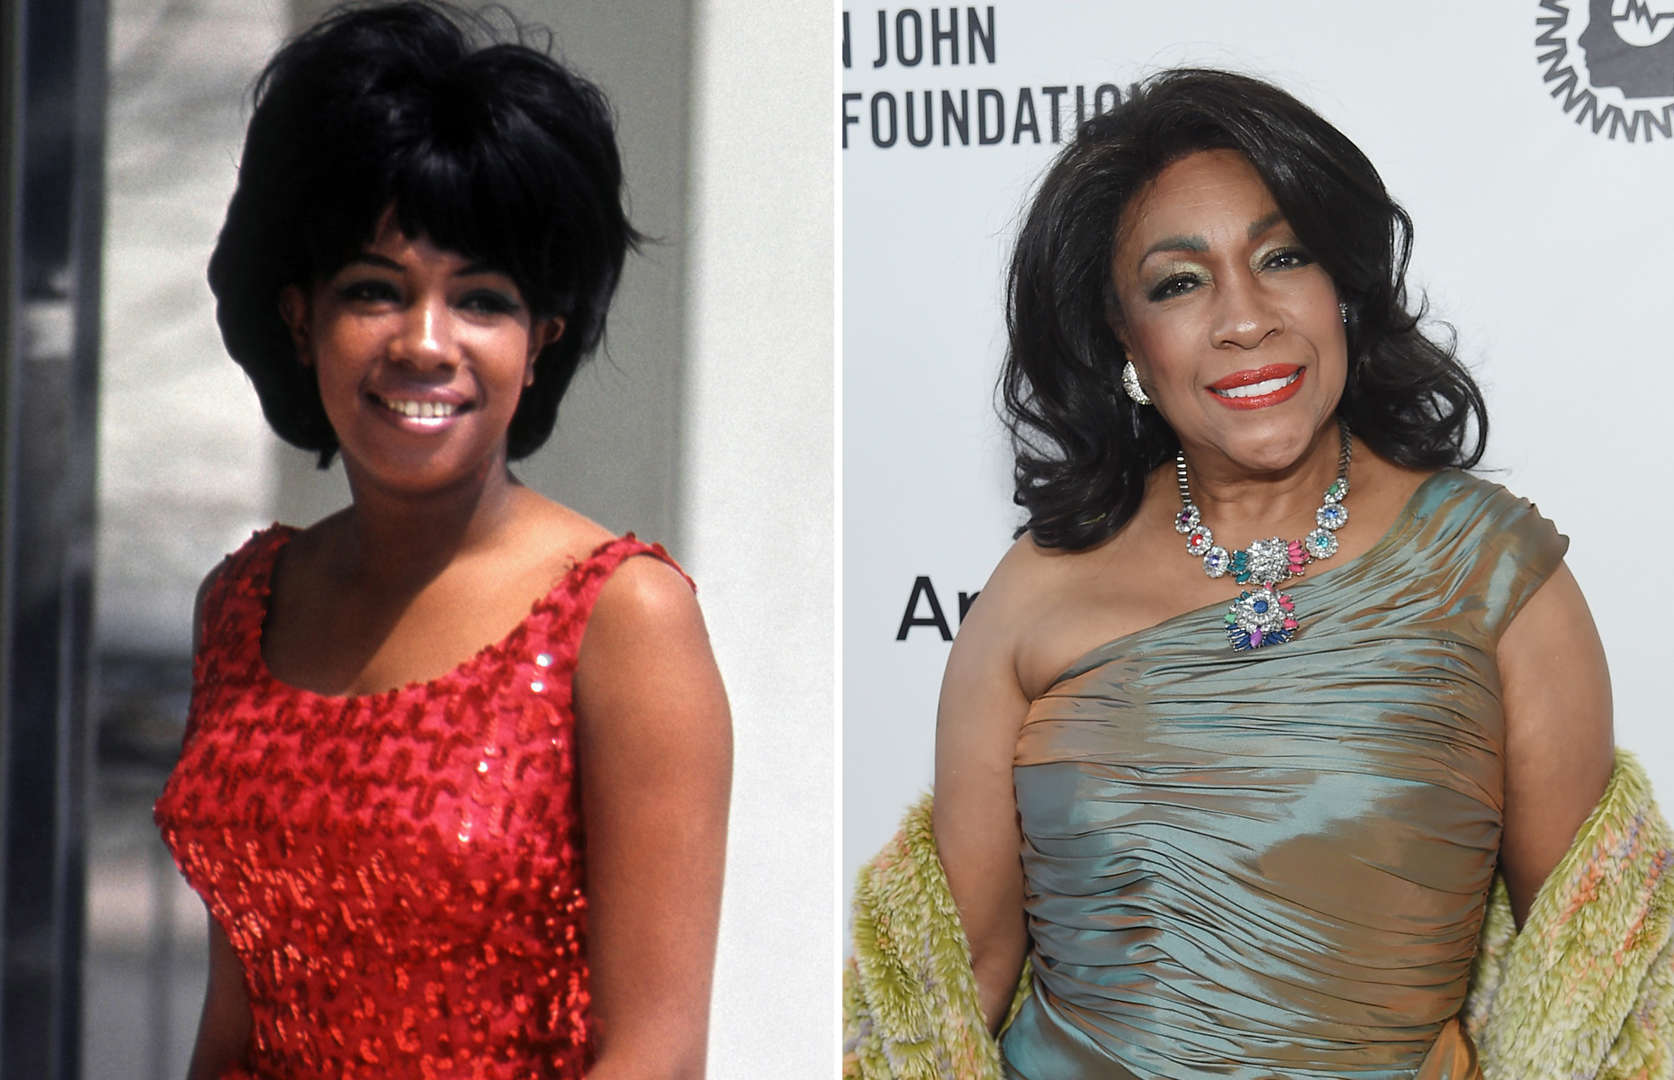 Stars of Motown: Then and now